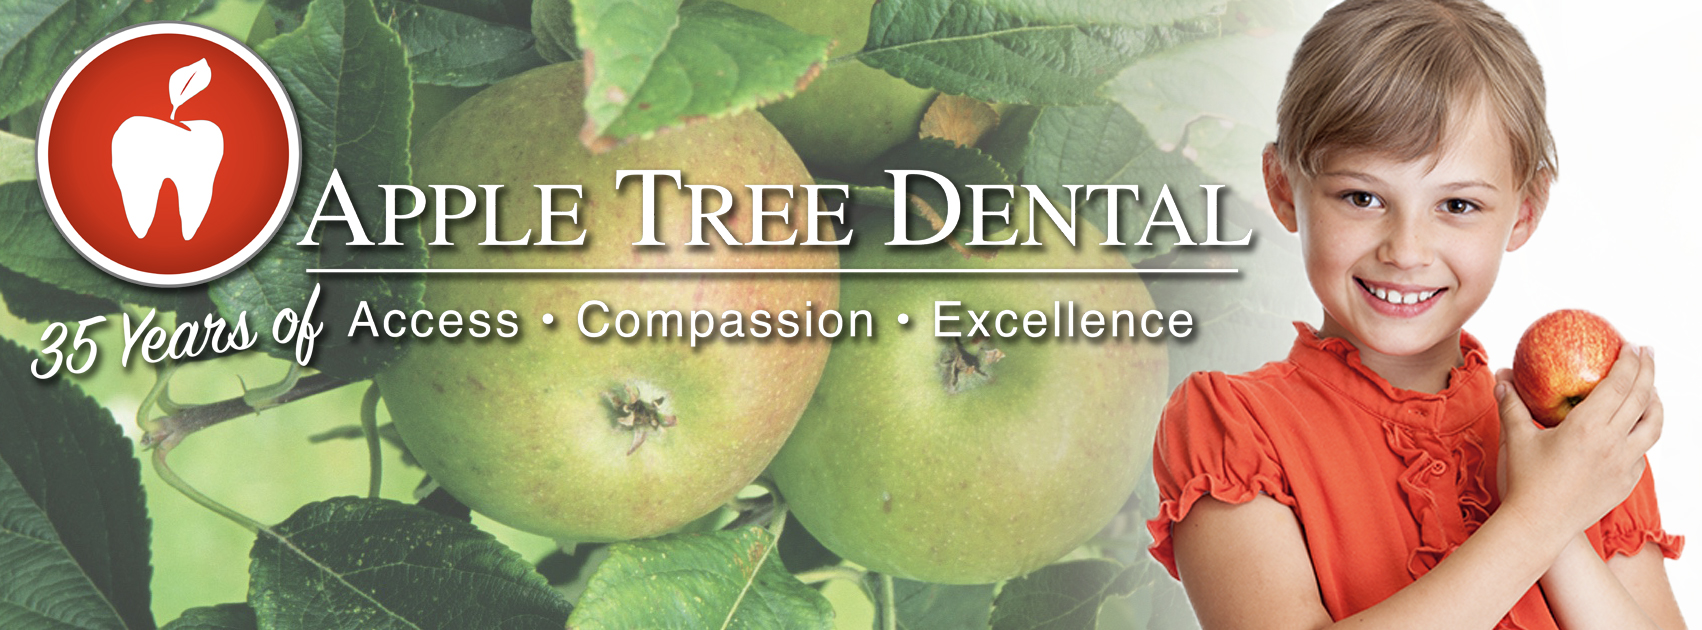 Apple-Tree-Dental-35-Year-Banner